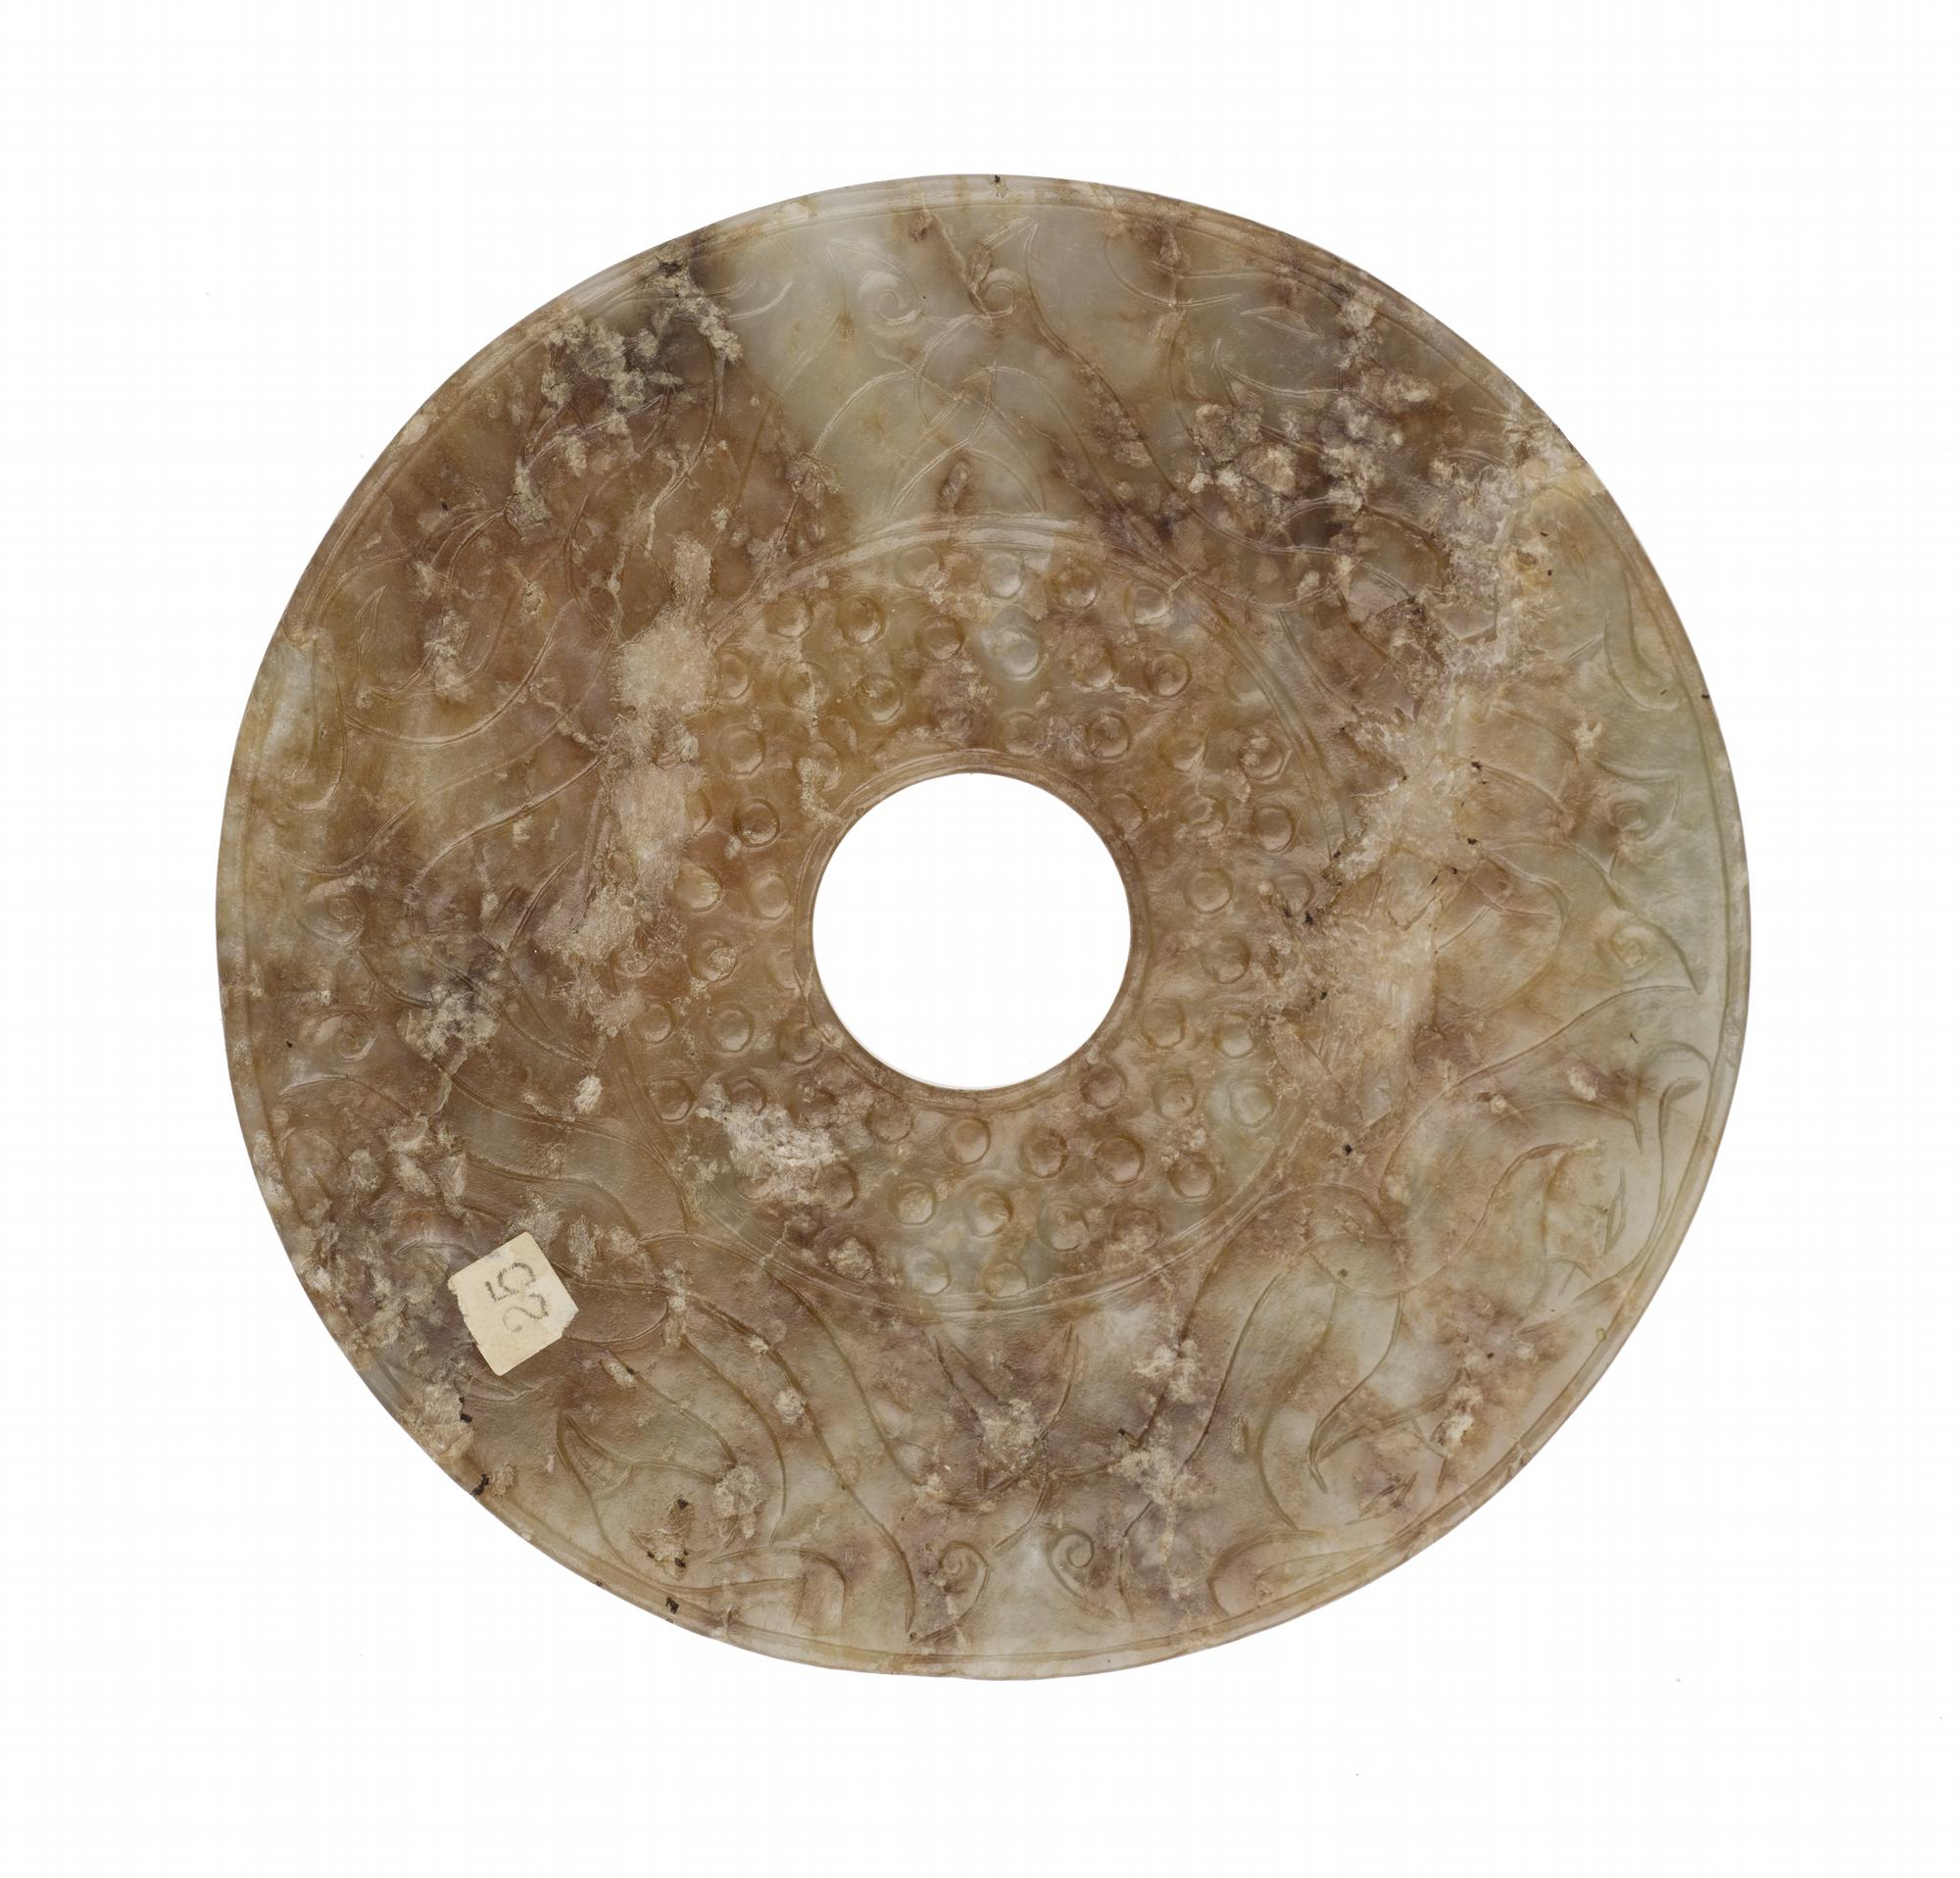 Bi disc of white jade carved on both sides in low relief with bird-headed scrolls interlacing in pairs and grain pattern: China, Han dynasty, 206 BC – 200 AD (A.1938.383).